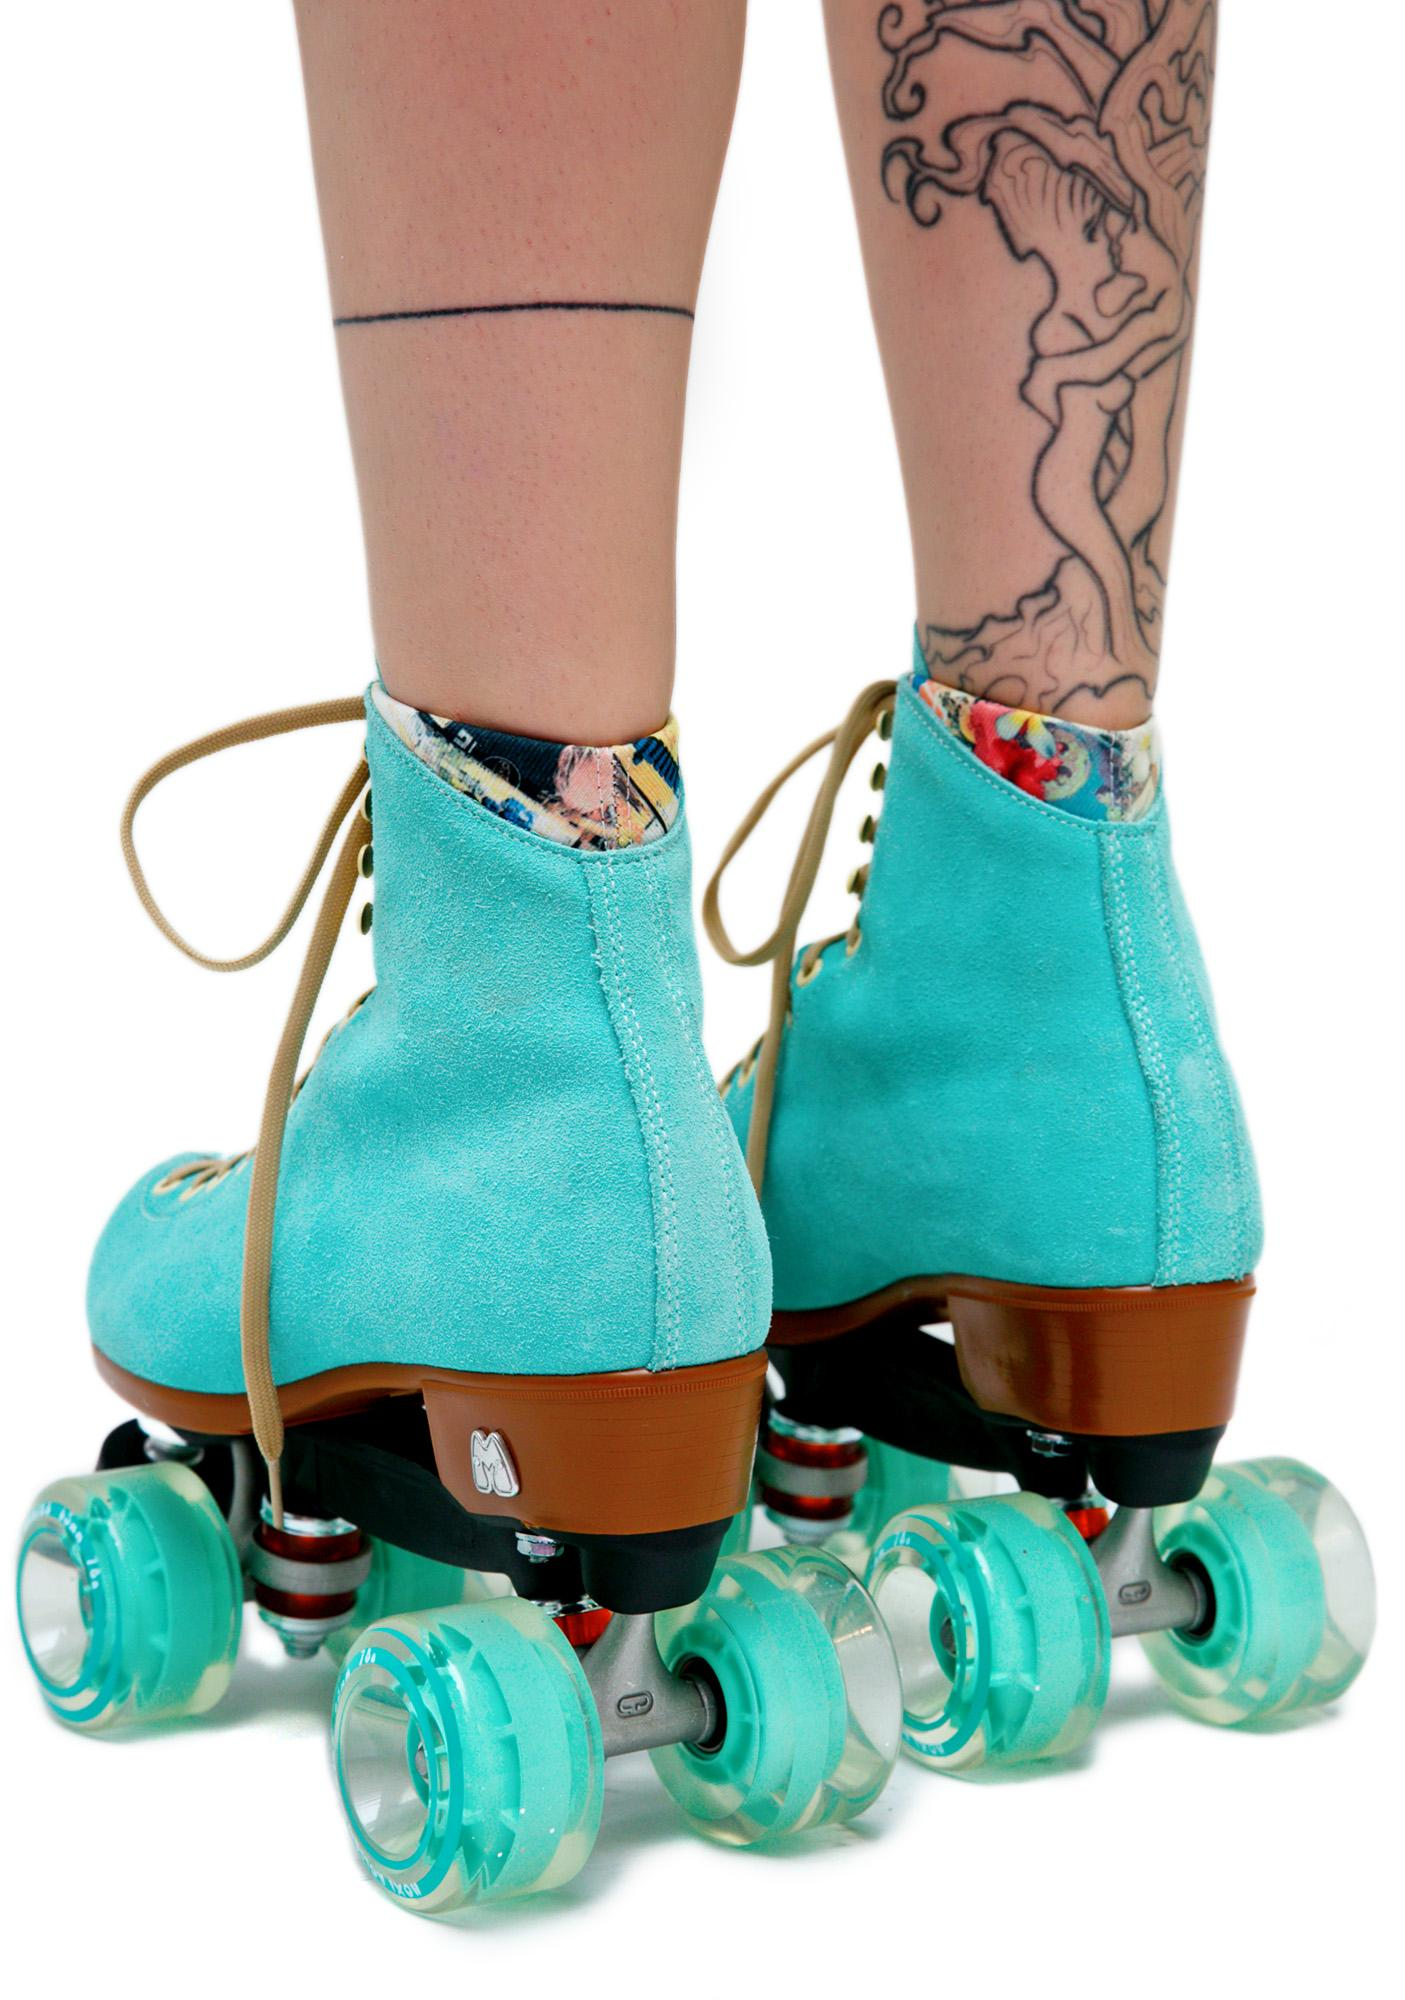 50313ec800a Moxi Roller Skates. Beauties! I could easily have as big a